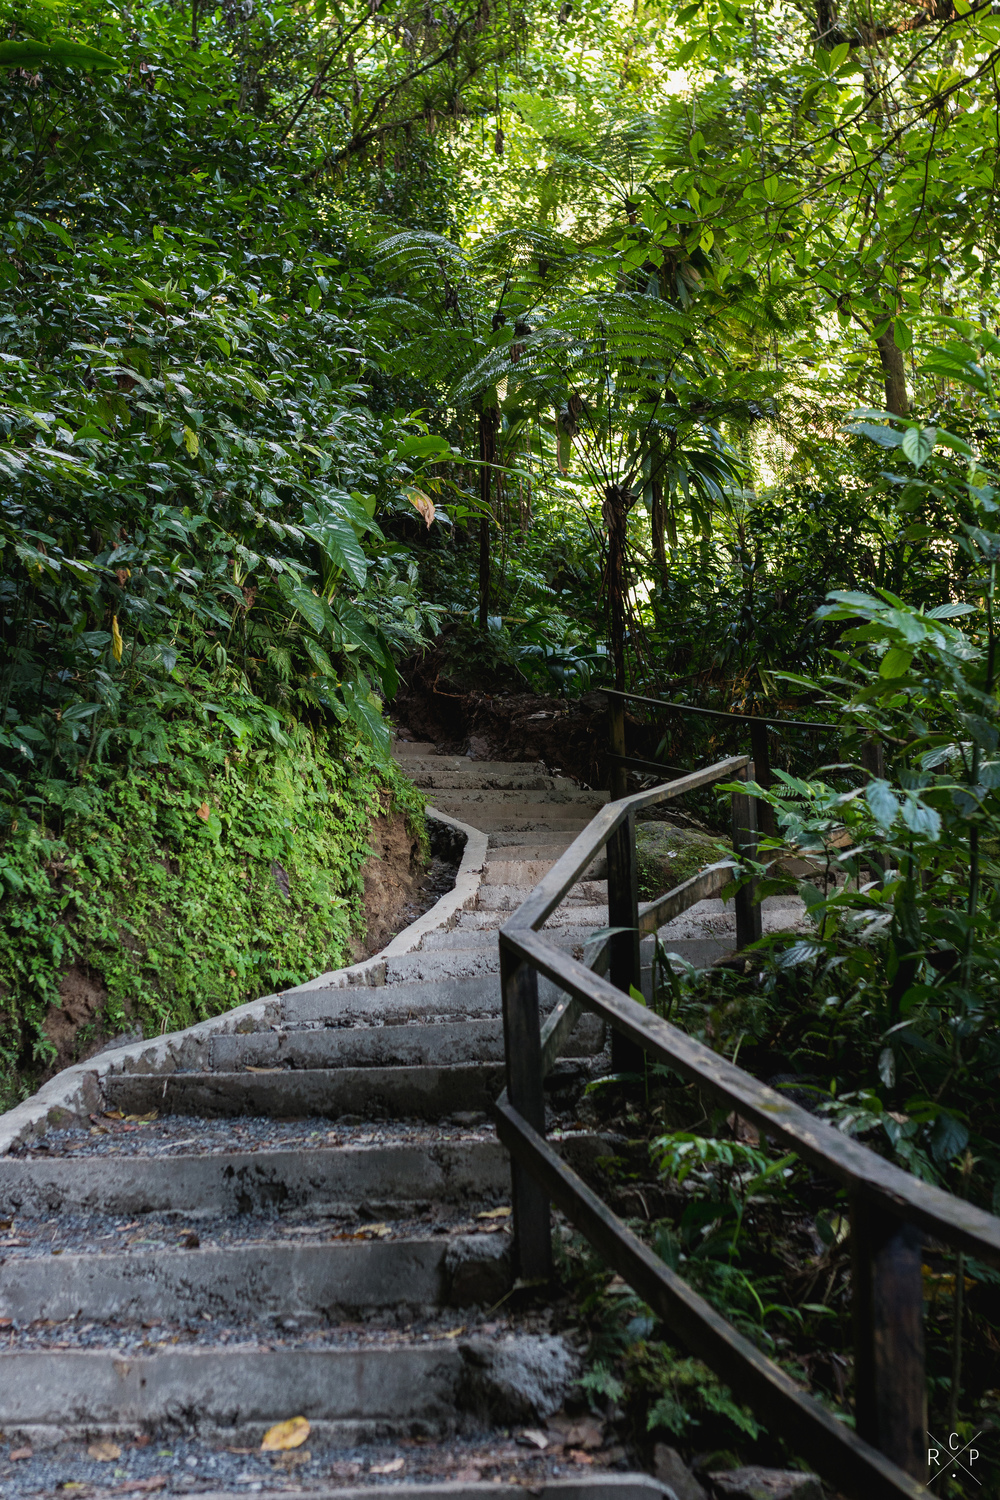 Stairway To Adventure 1 - Trafalgar Falls, Dominica 07/03/2016